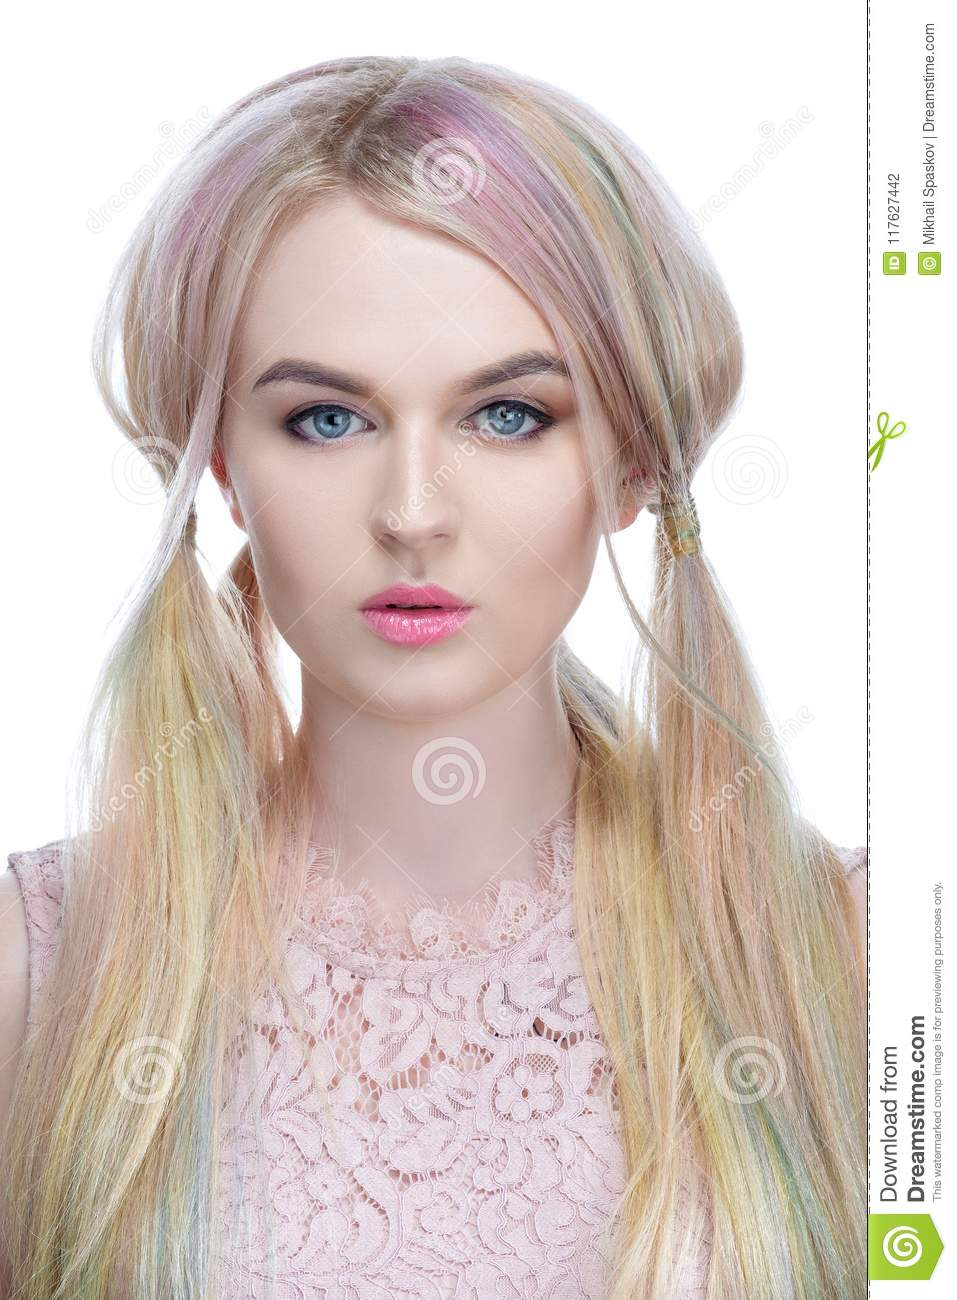 Beautiful Model Girl With Blond Hair With Colored Hair Close Up On A